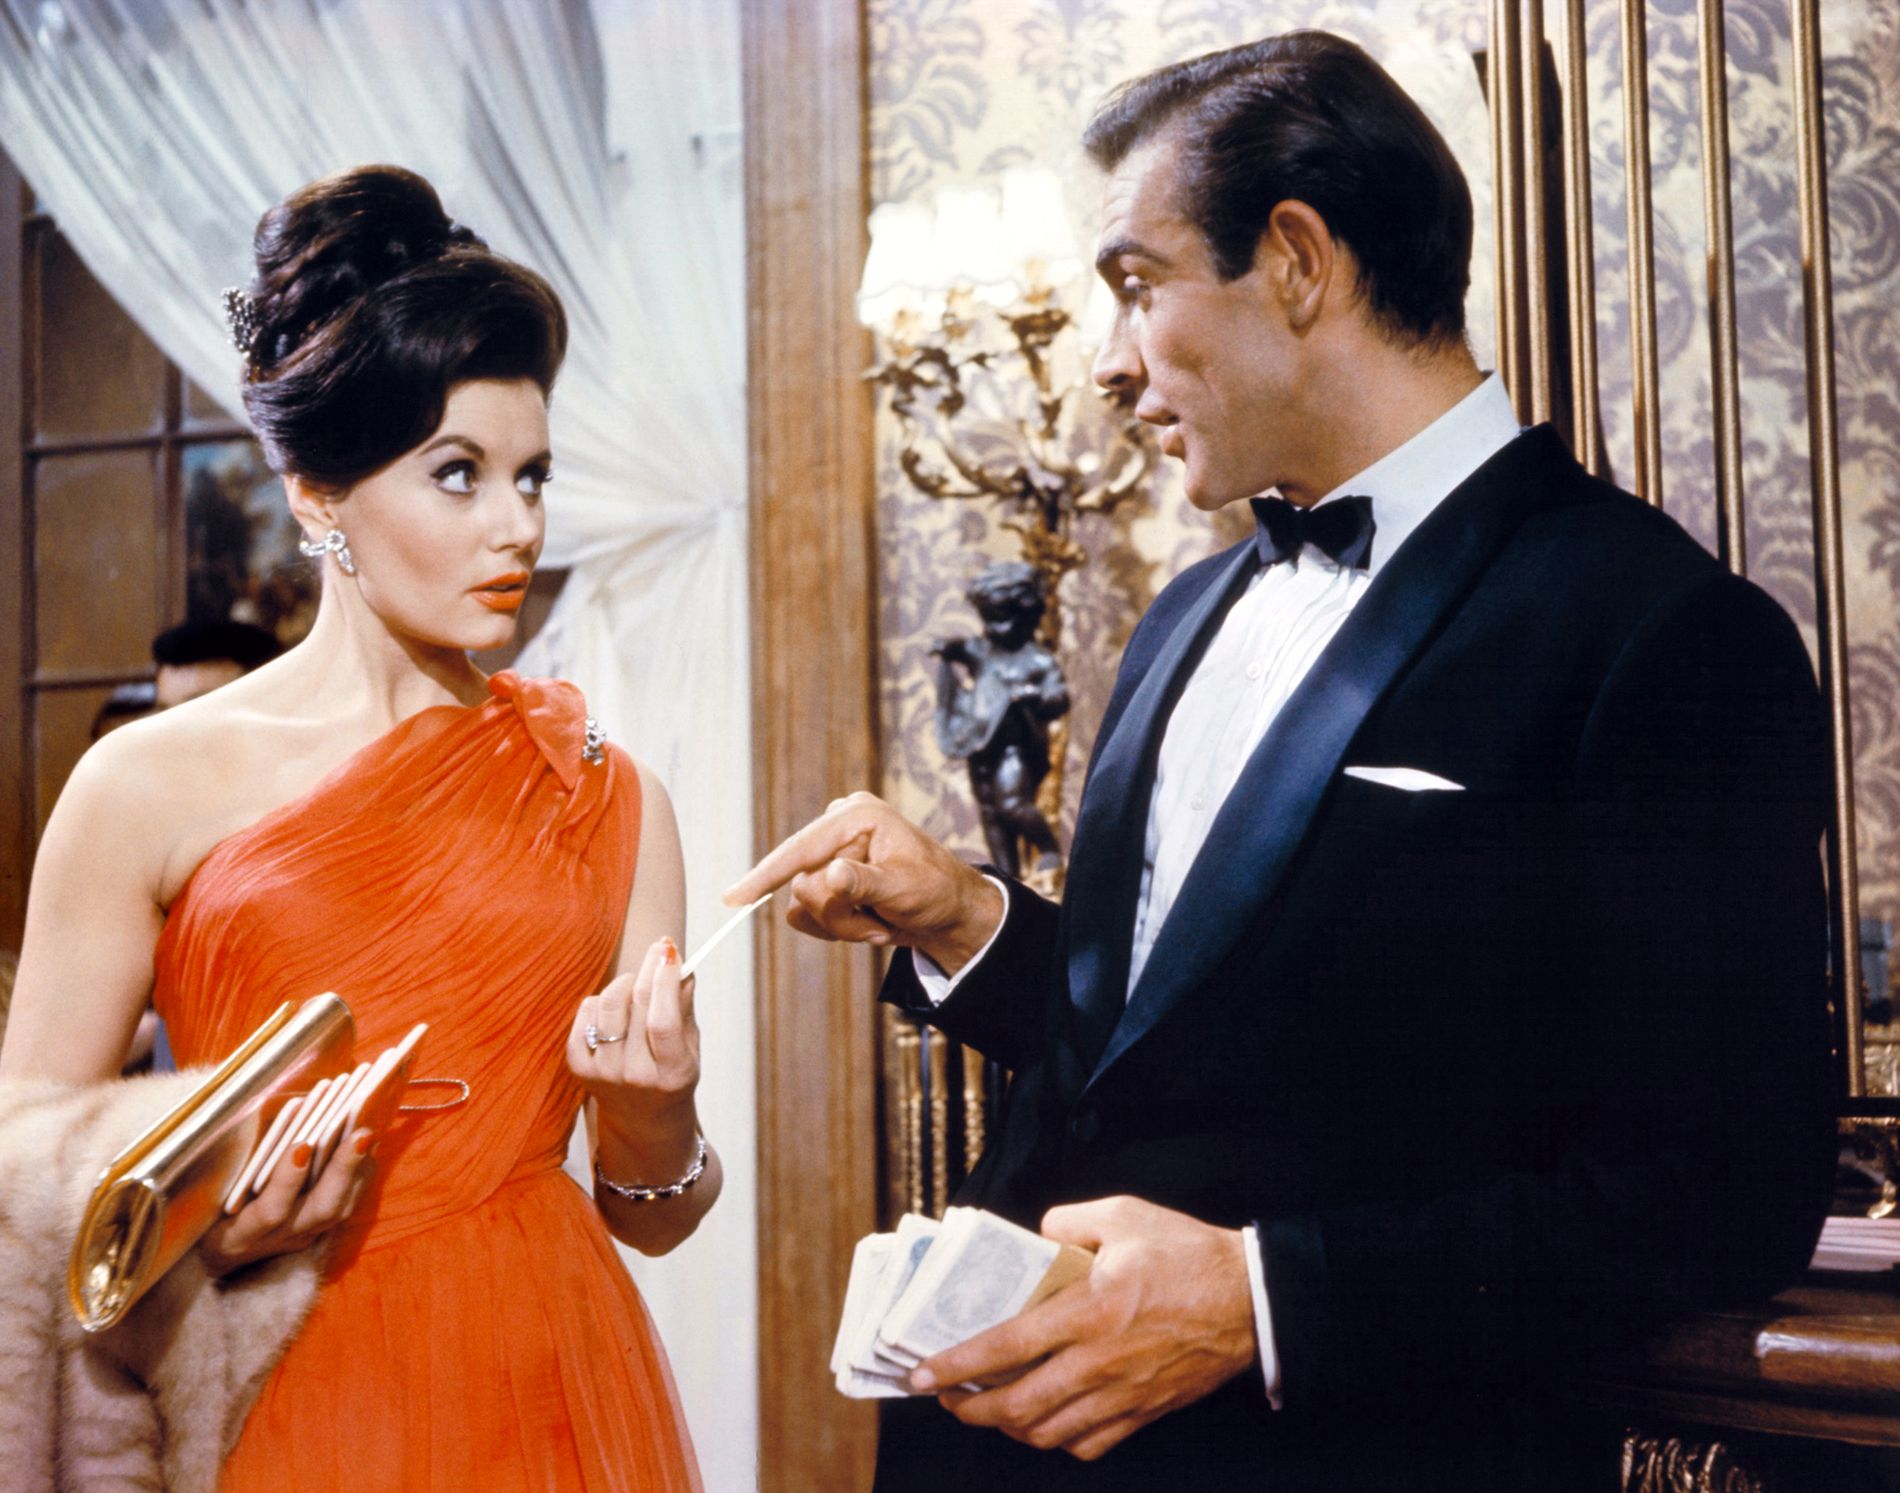 FØRSTE BOND-PIKE: Eunice Gayson, som Sylvia Trench, spiller mot Sean Connery, som James Bond.